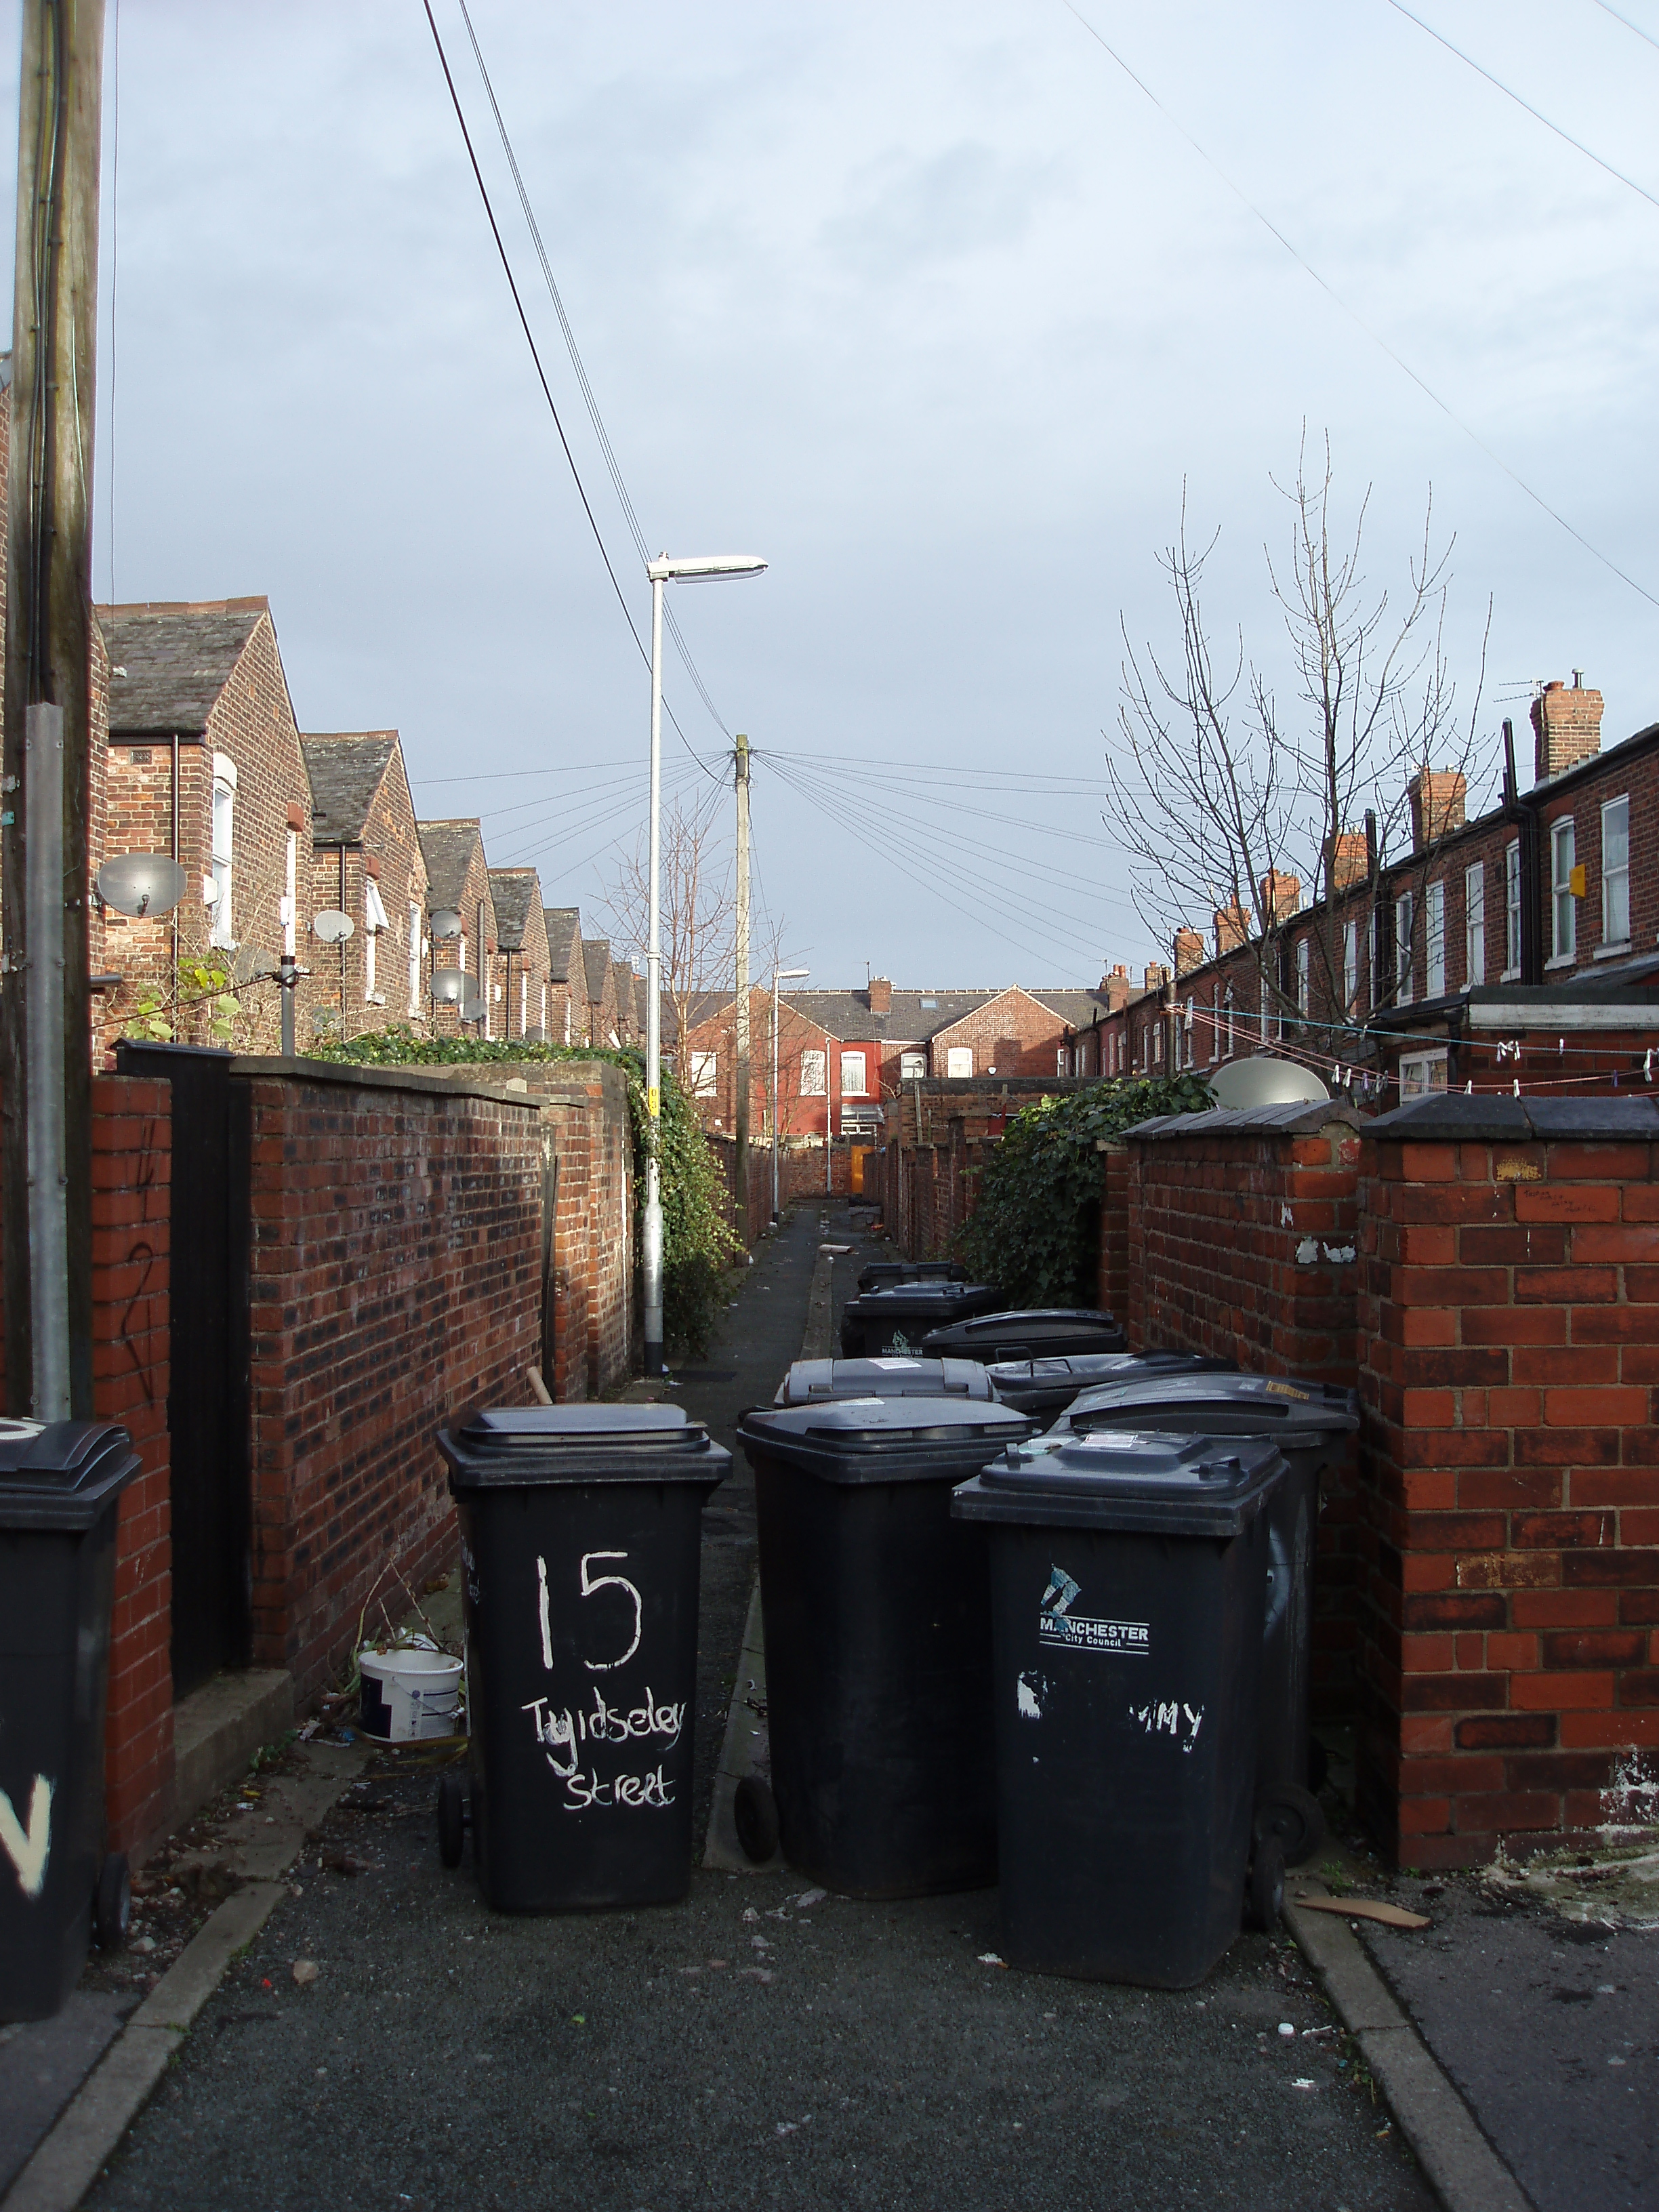 back streets in inner city manchester